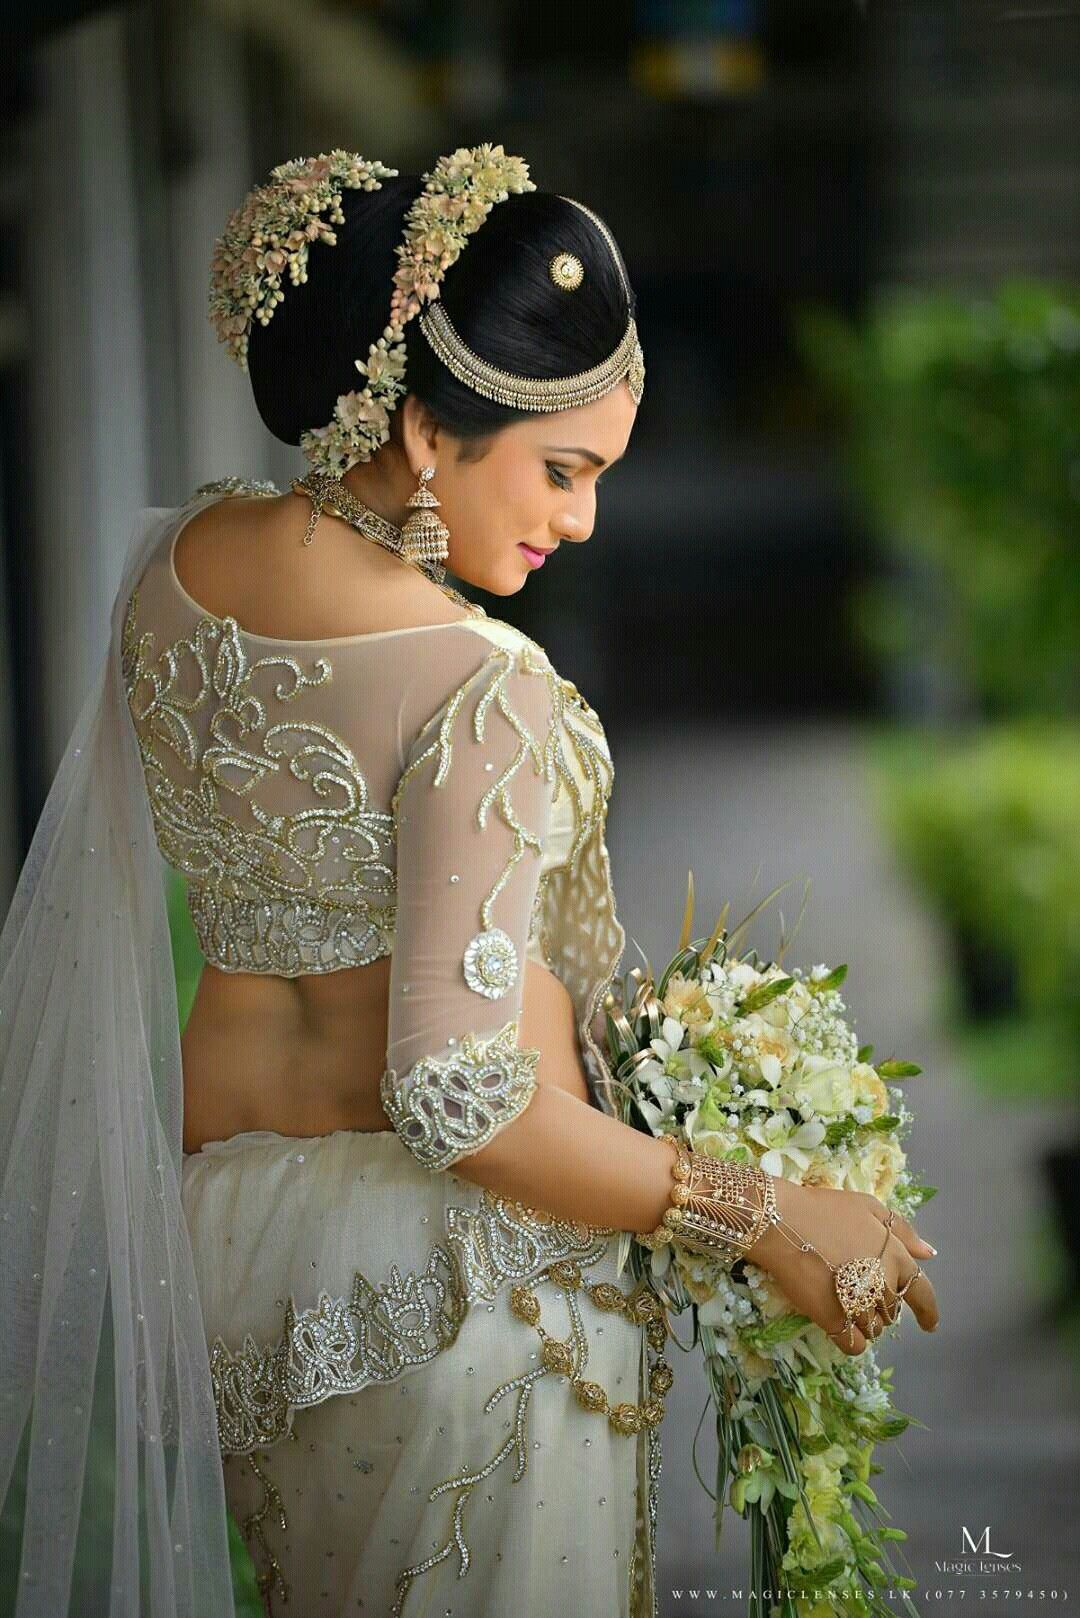 Bridal accessories on pinterest 86 pins - Taken Before Low Buns Bun Hair Acupressure Points The Voice The Edge Saree Hooks Hair Styles